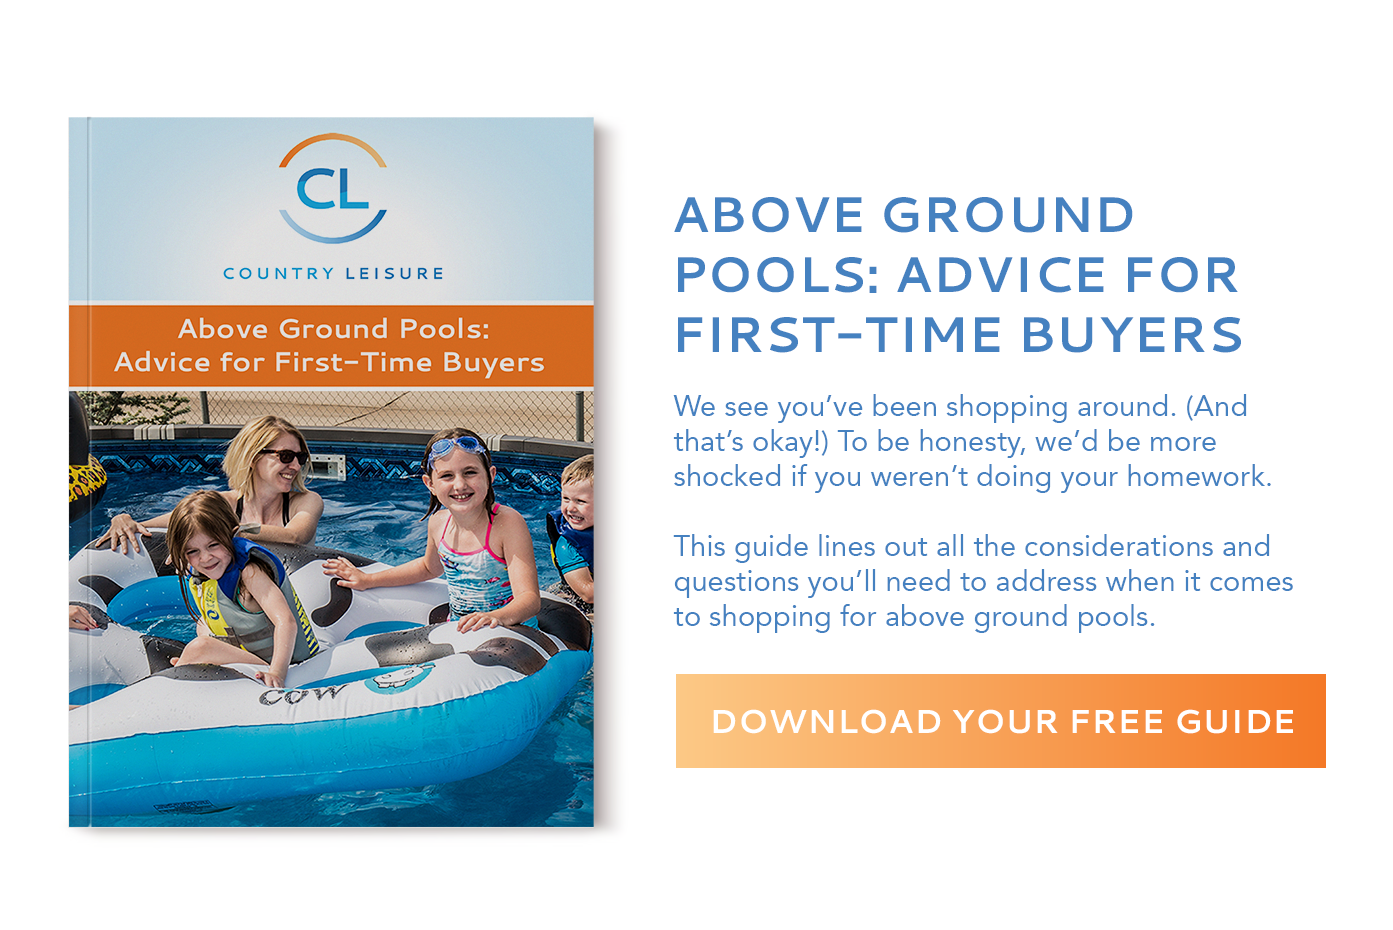 Above Ground Pools: Advice for First-Time Buyers